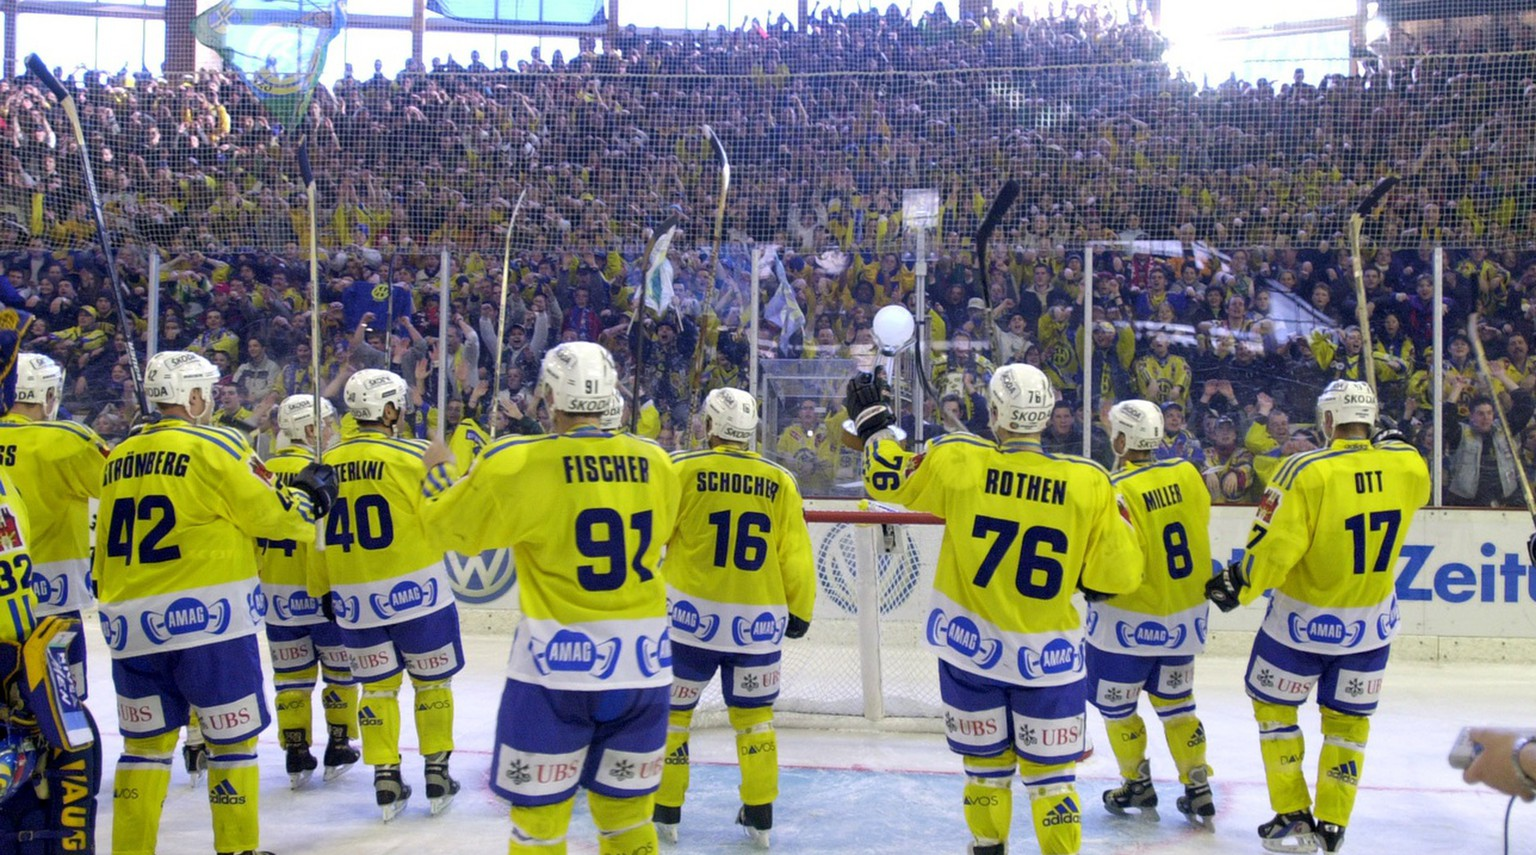 HC Davos won the Spengler Cup final against Canada Selects, Sunday, December 31, 2000, in Davos, Switzerland. It's the first time since 1958 that the Swiss club won this Ice Hockey tournament. (KEYSTONE/Edi Engeler)